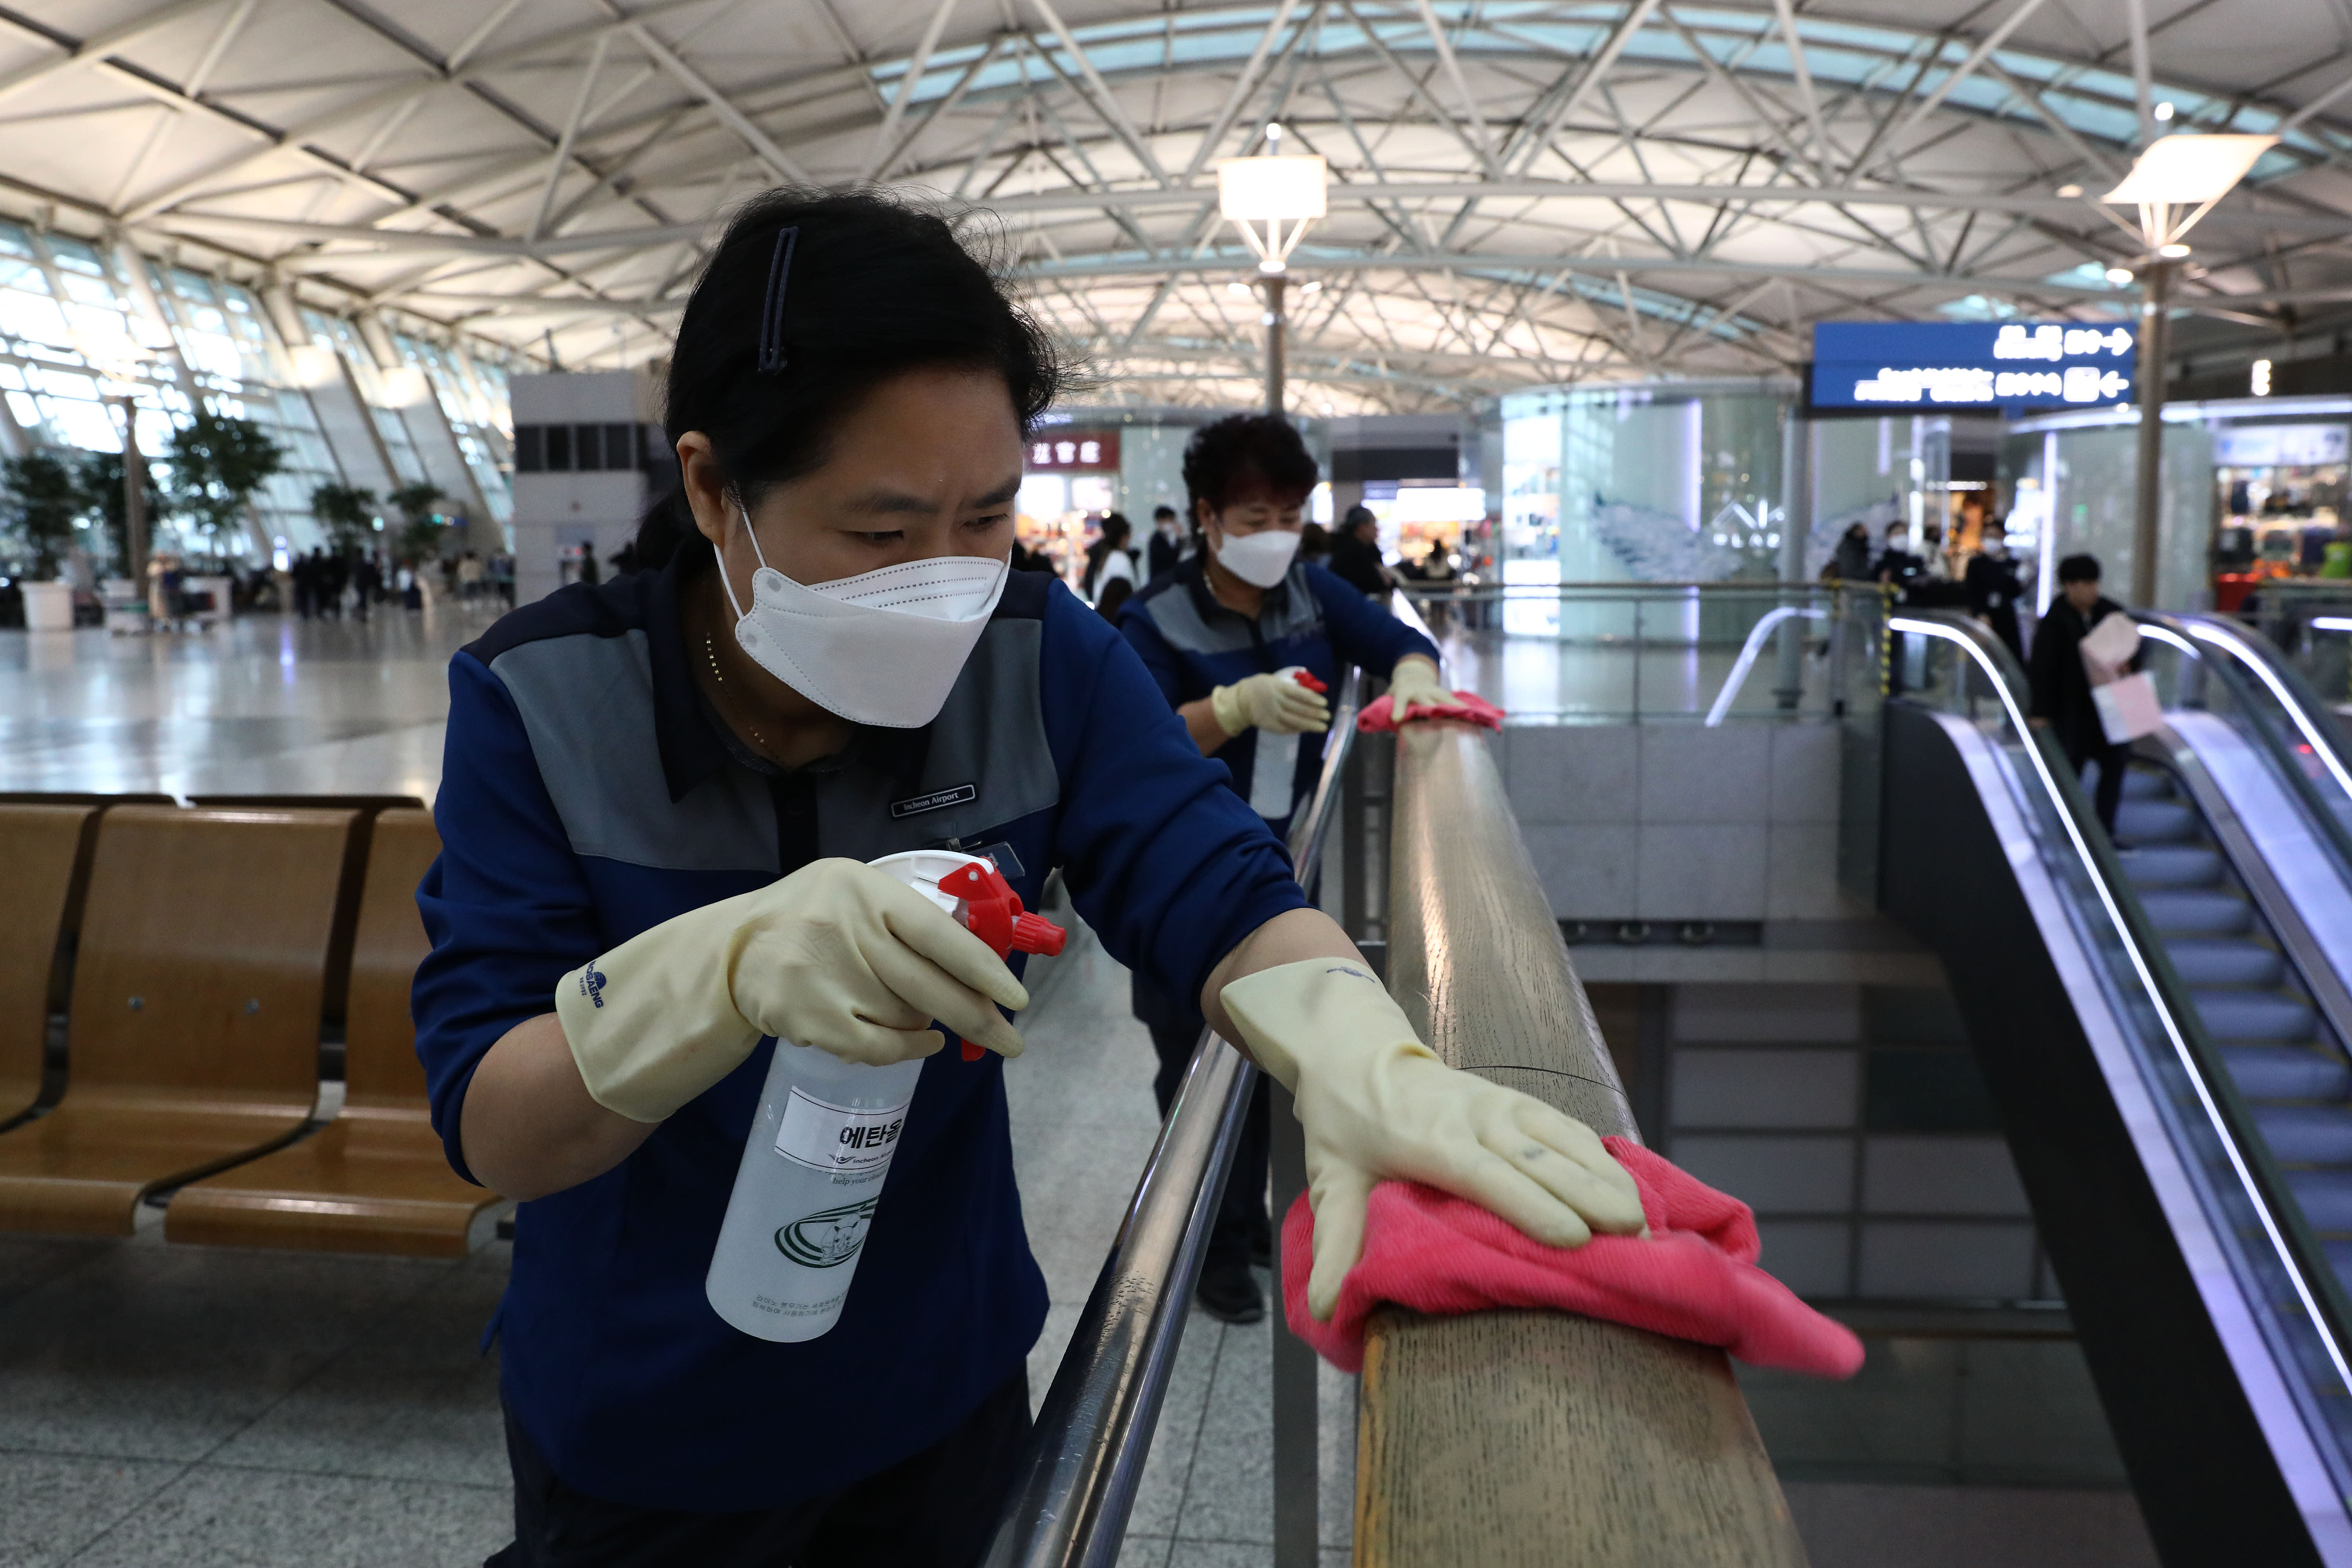 China coronavirus death toll climbs to 81 with nearly 2,900 cases worldwide